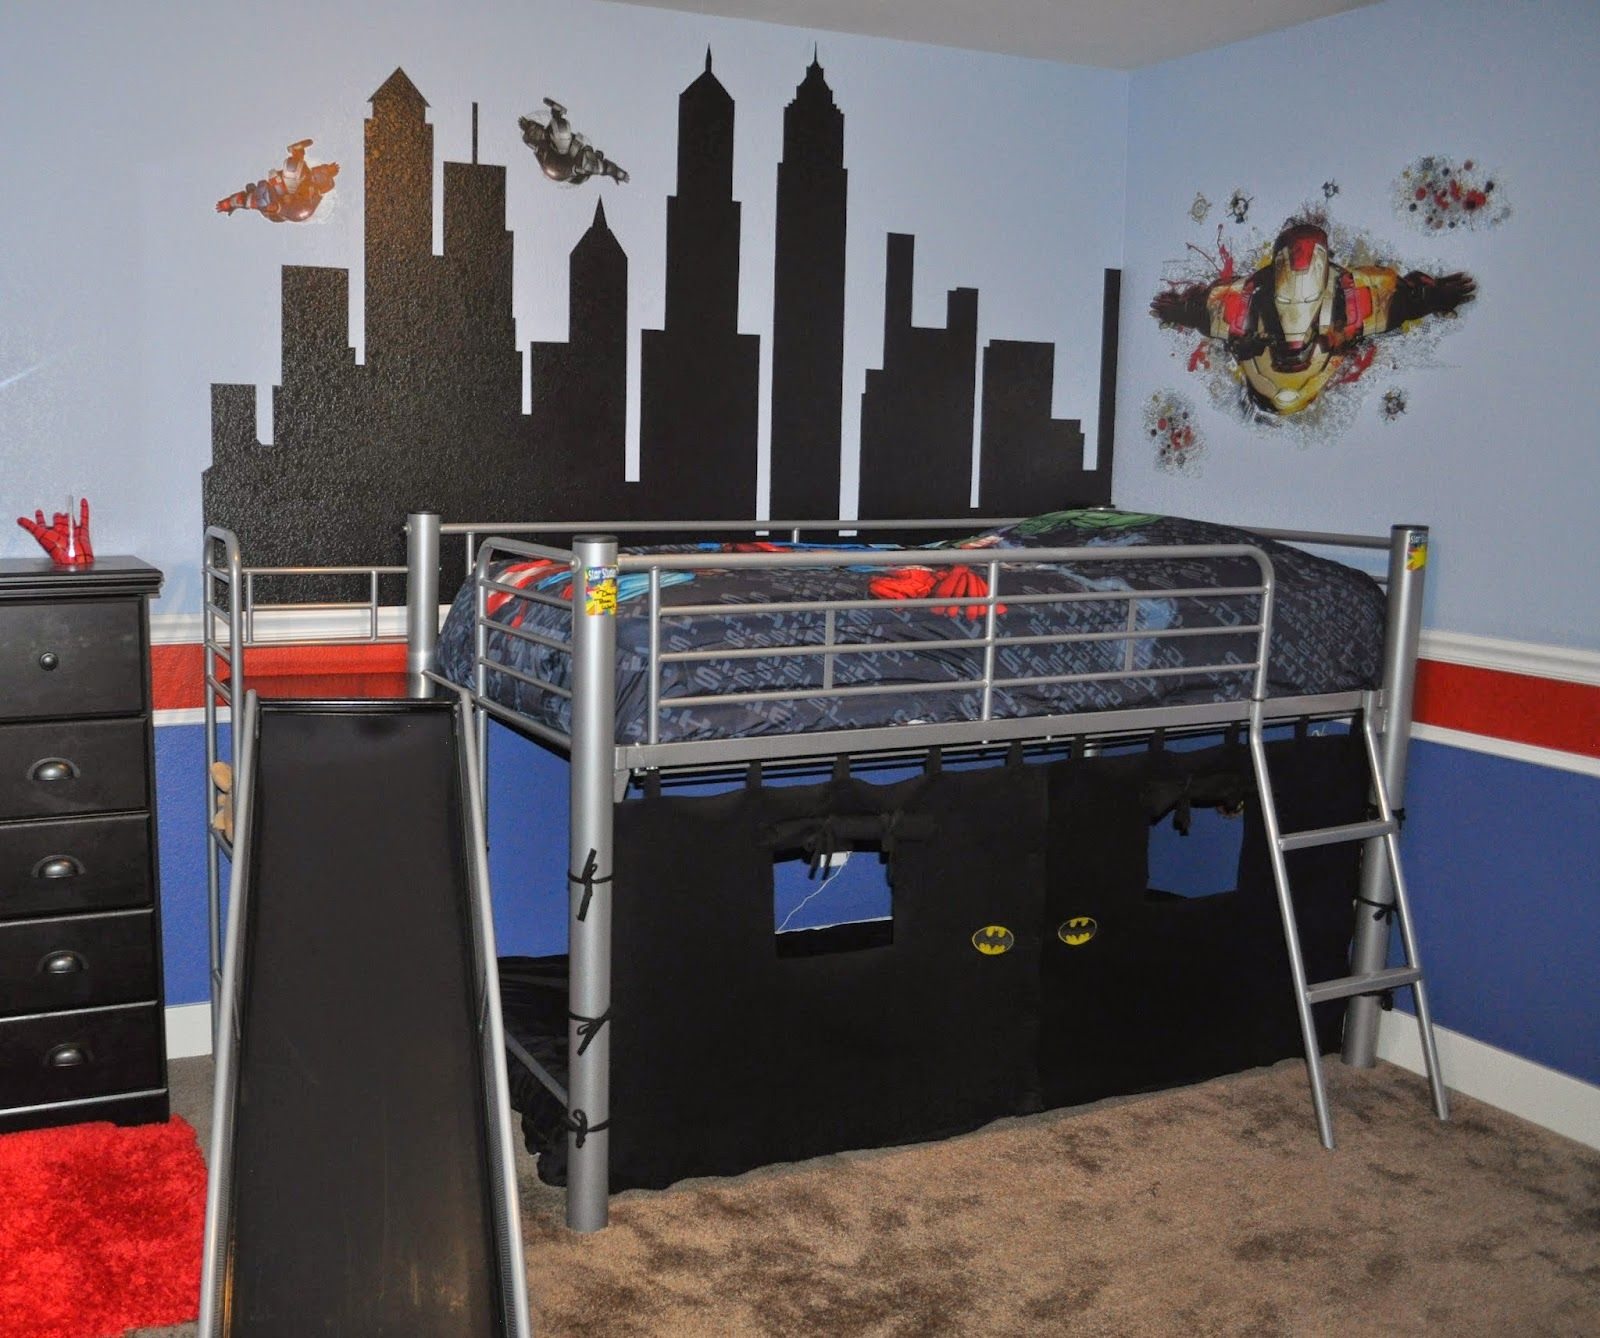 Toddler Boys Superhero Bedroom Ideas a boy's superhero bedroom | e's bedroom | pinterest | boys, boys